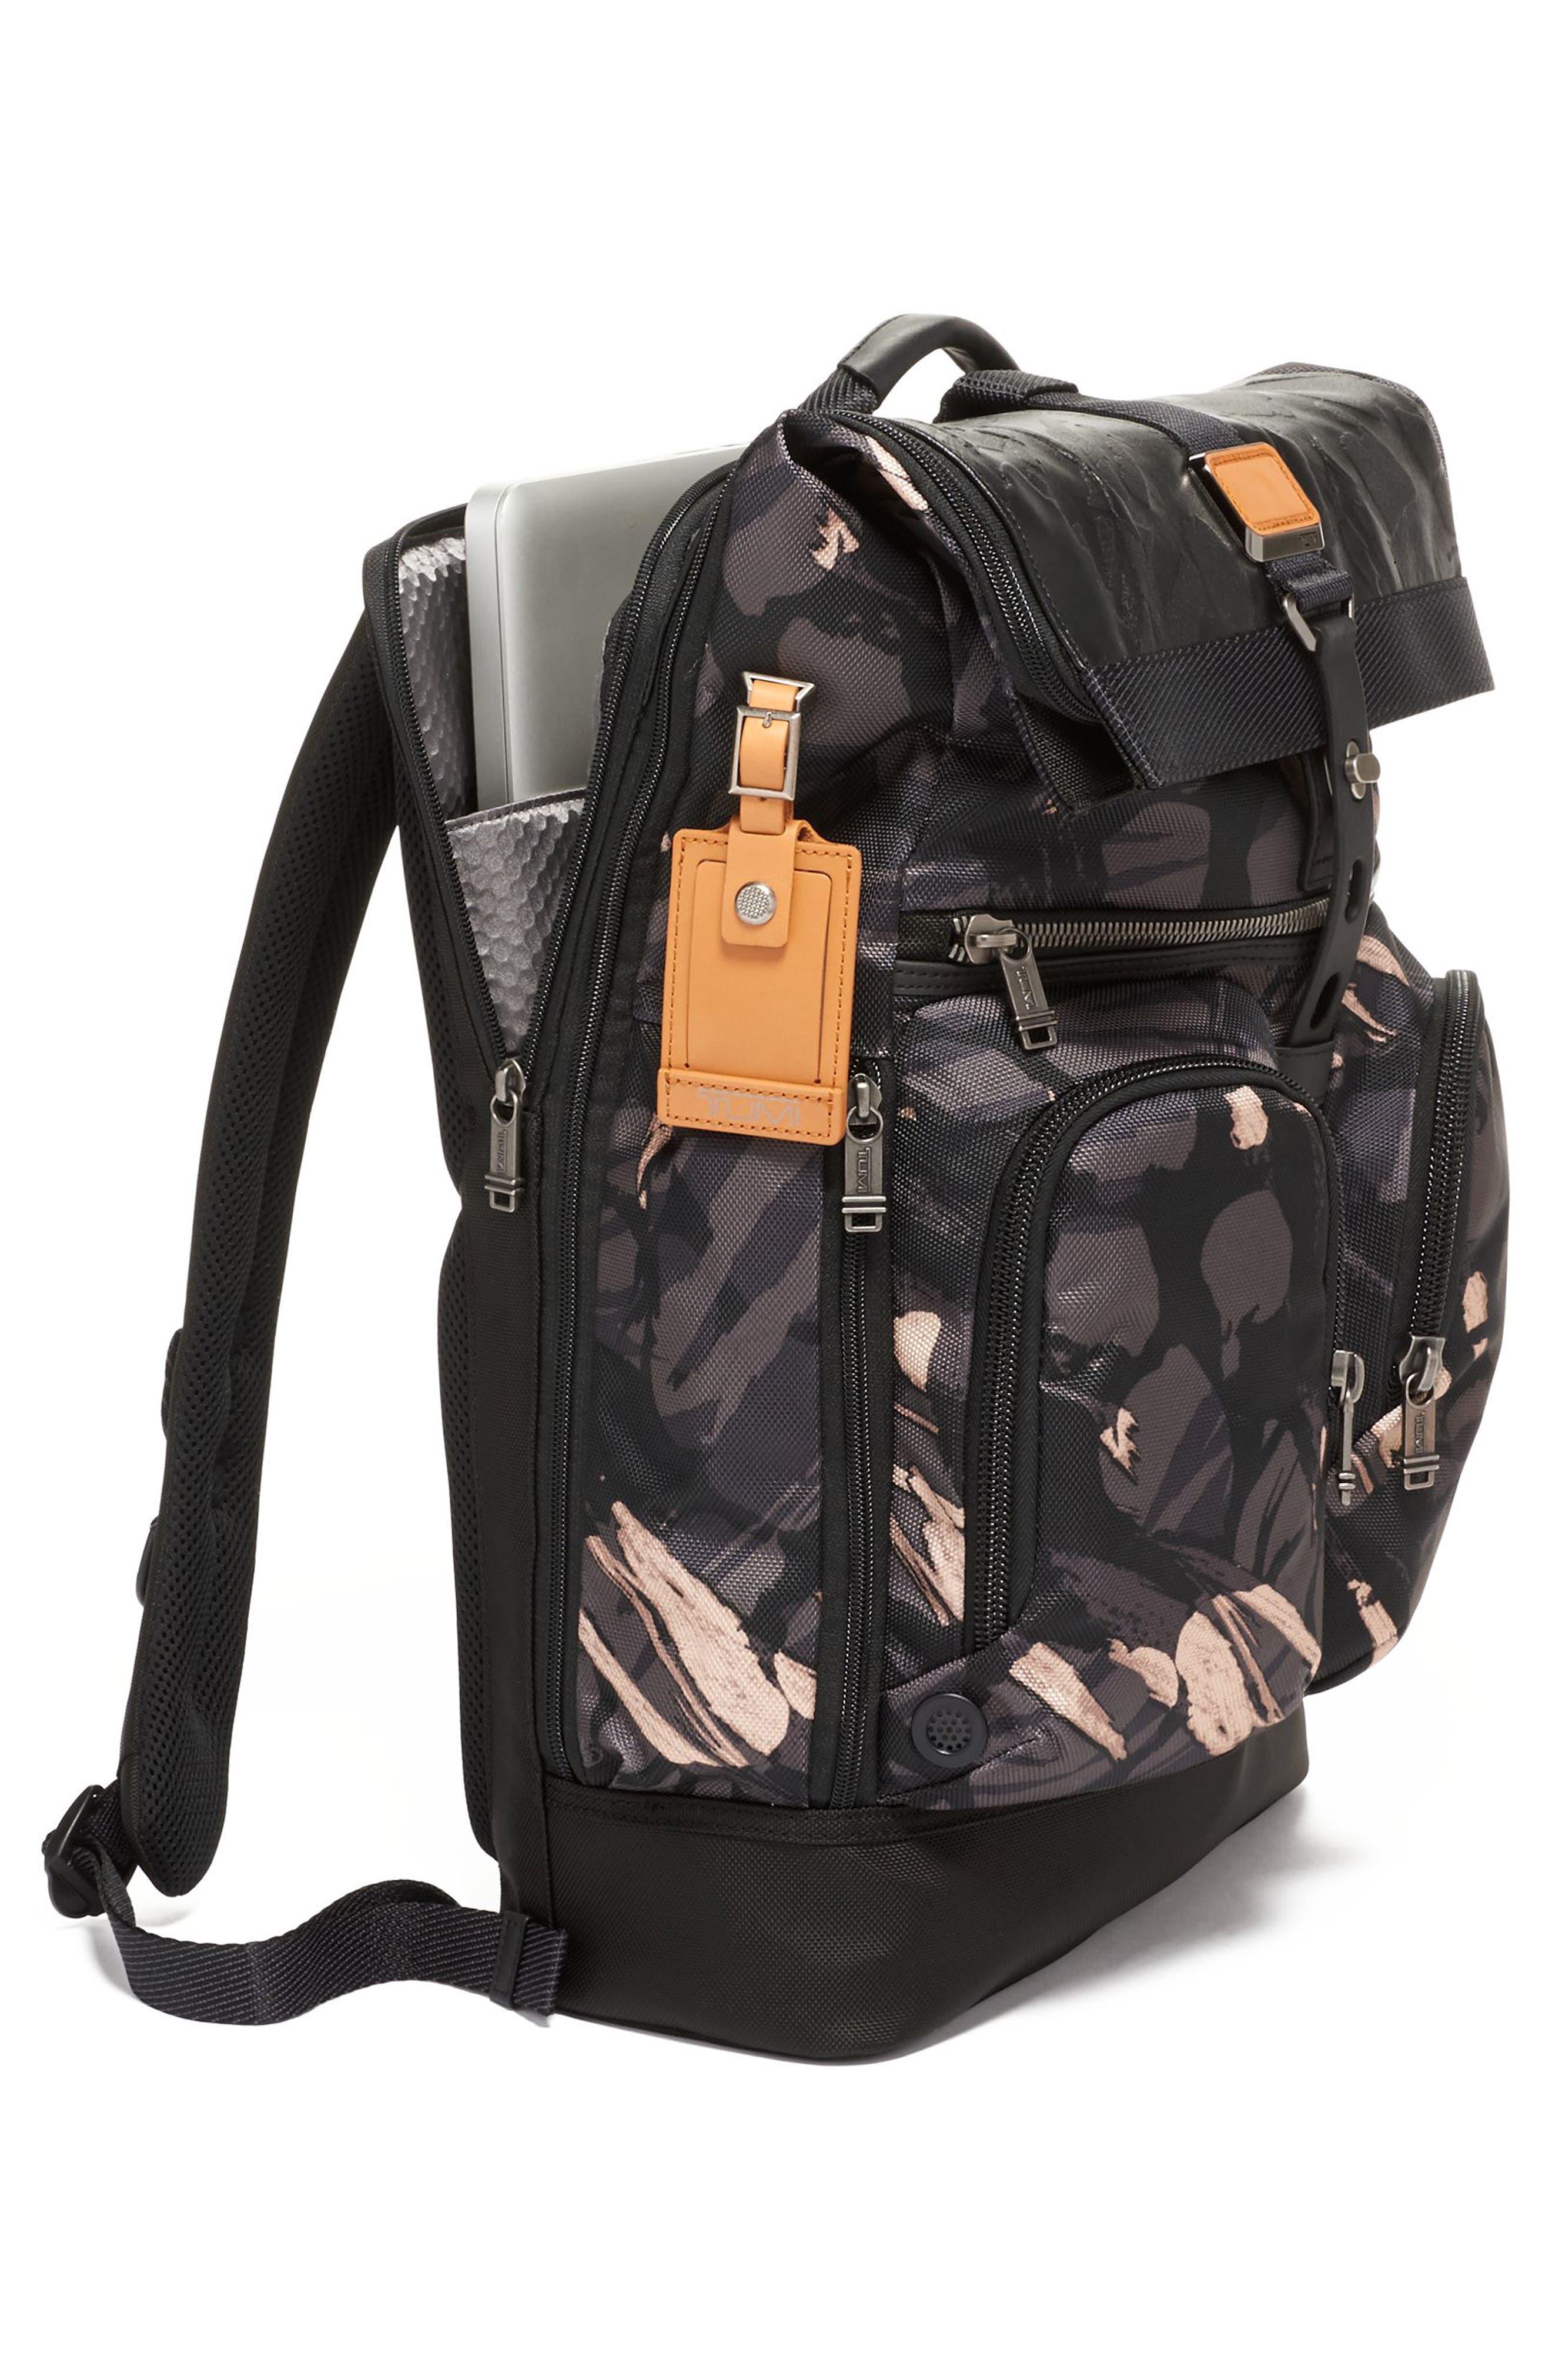 TUMI,                             Alpha Bravo London Backpack,                             Alternate thumbnail 6, color,                             GREY HIGHLANDS PRINT